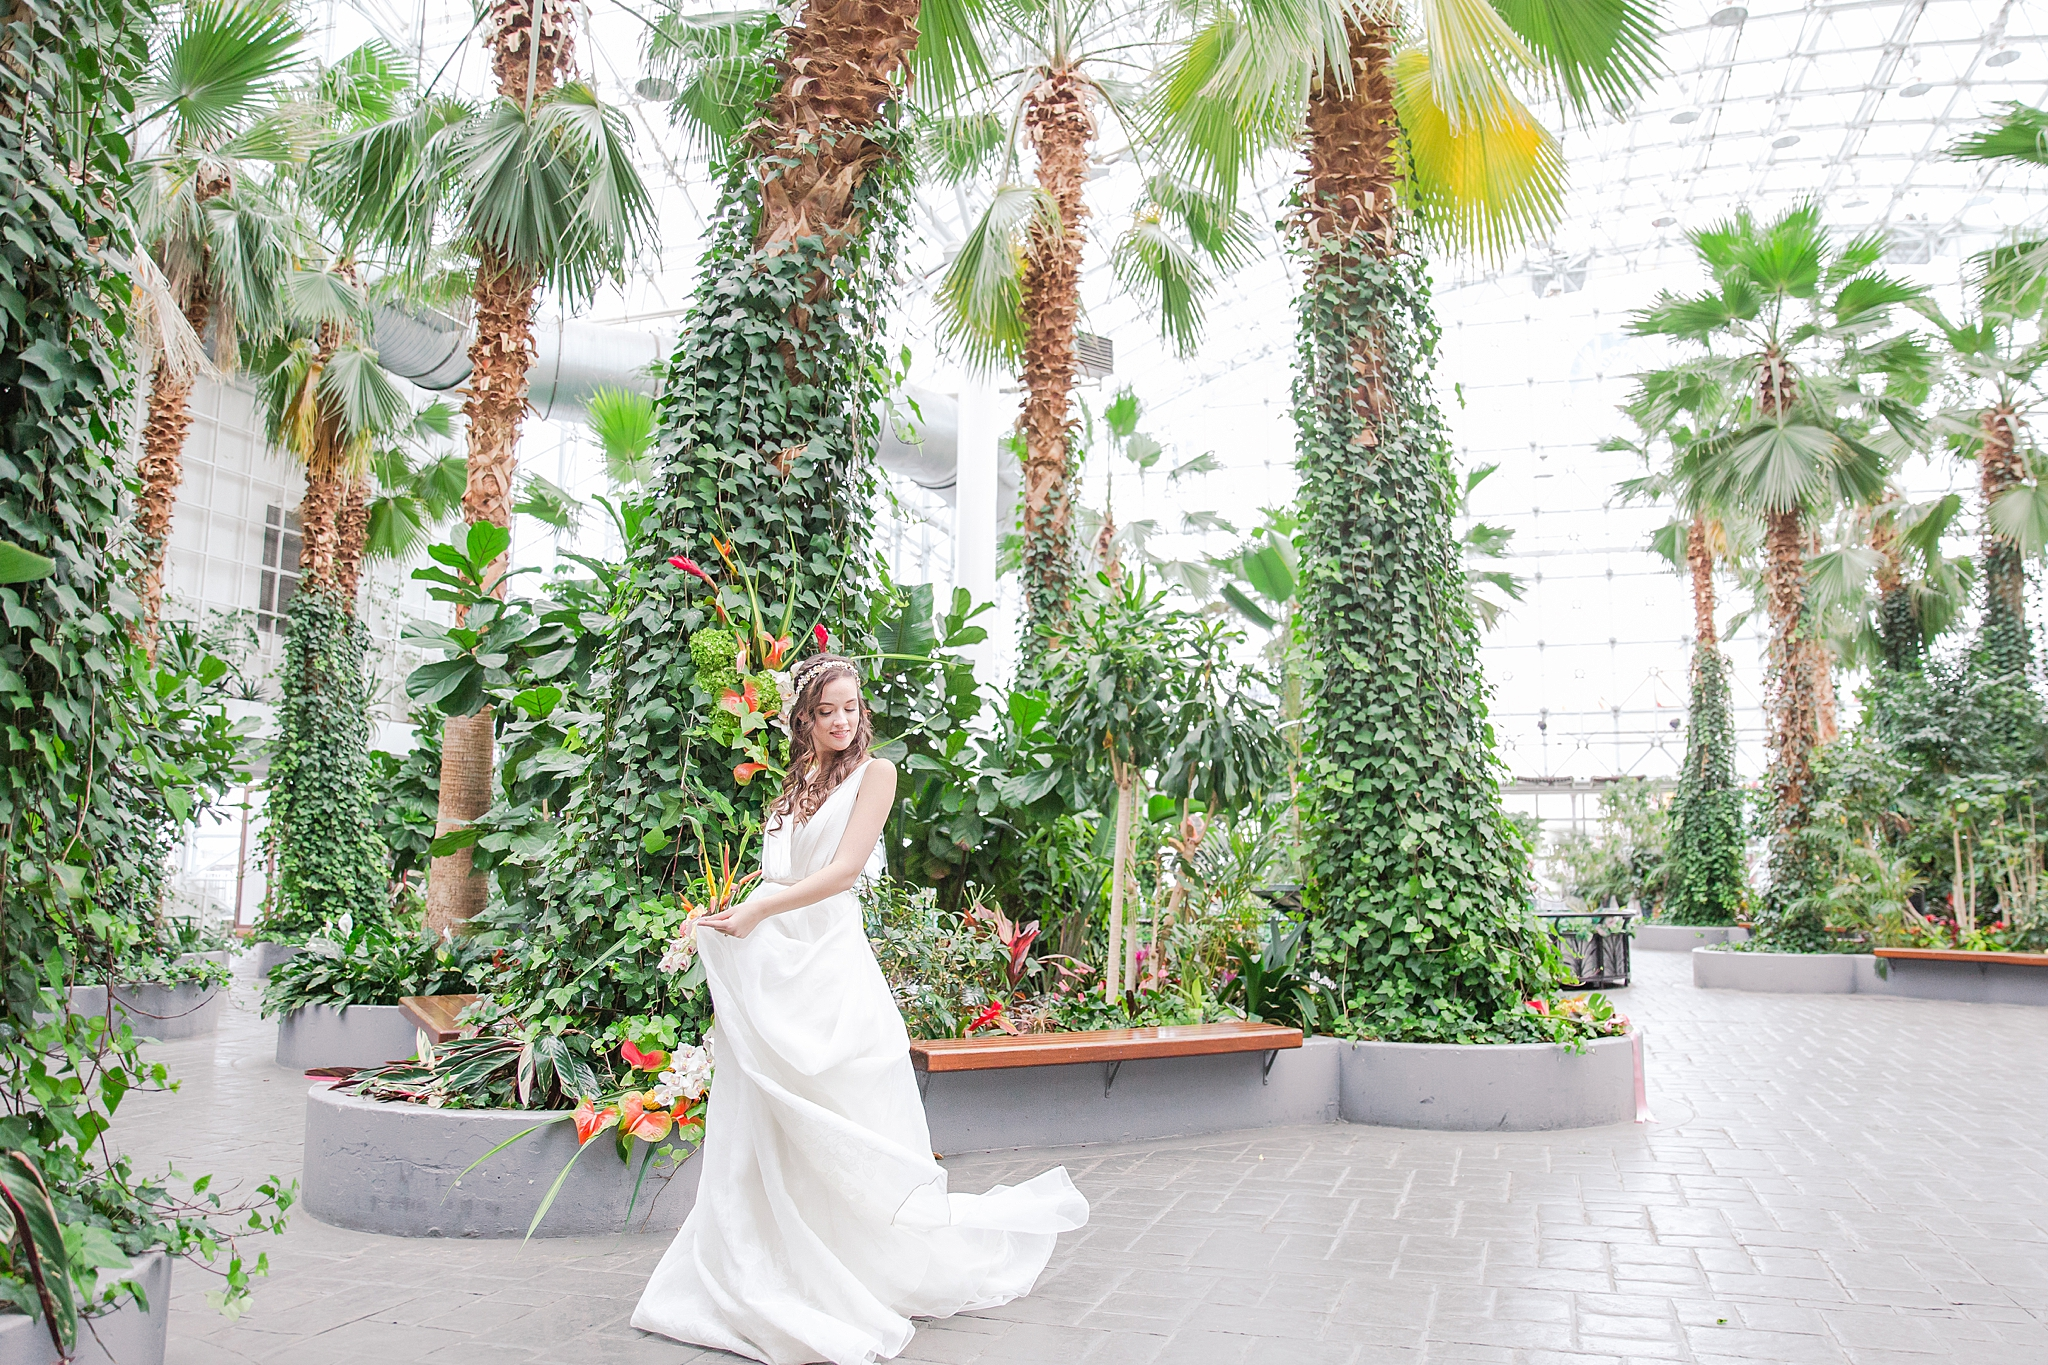 colorful-tropical-wedding-photos-at-the-crystal-gardens-in-chicago-illinois-by-courtney-carolyn-photography_0005.jpg